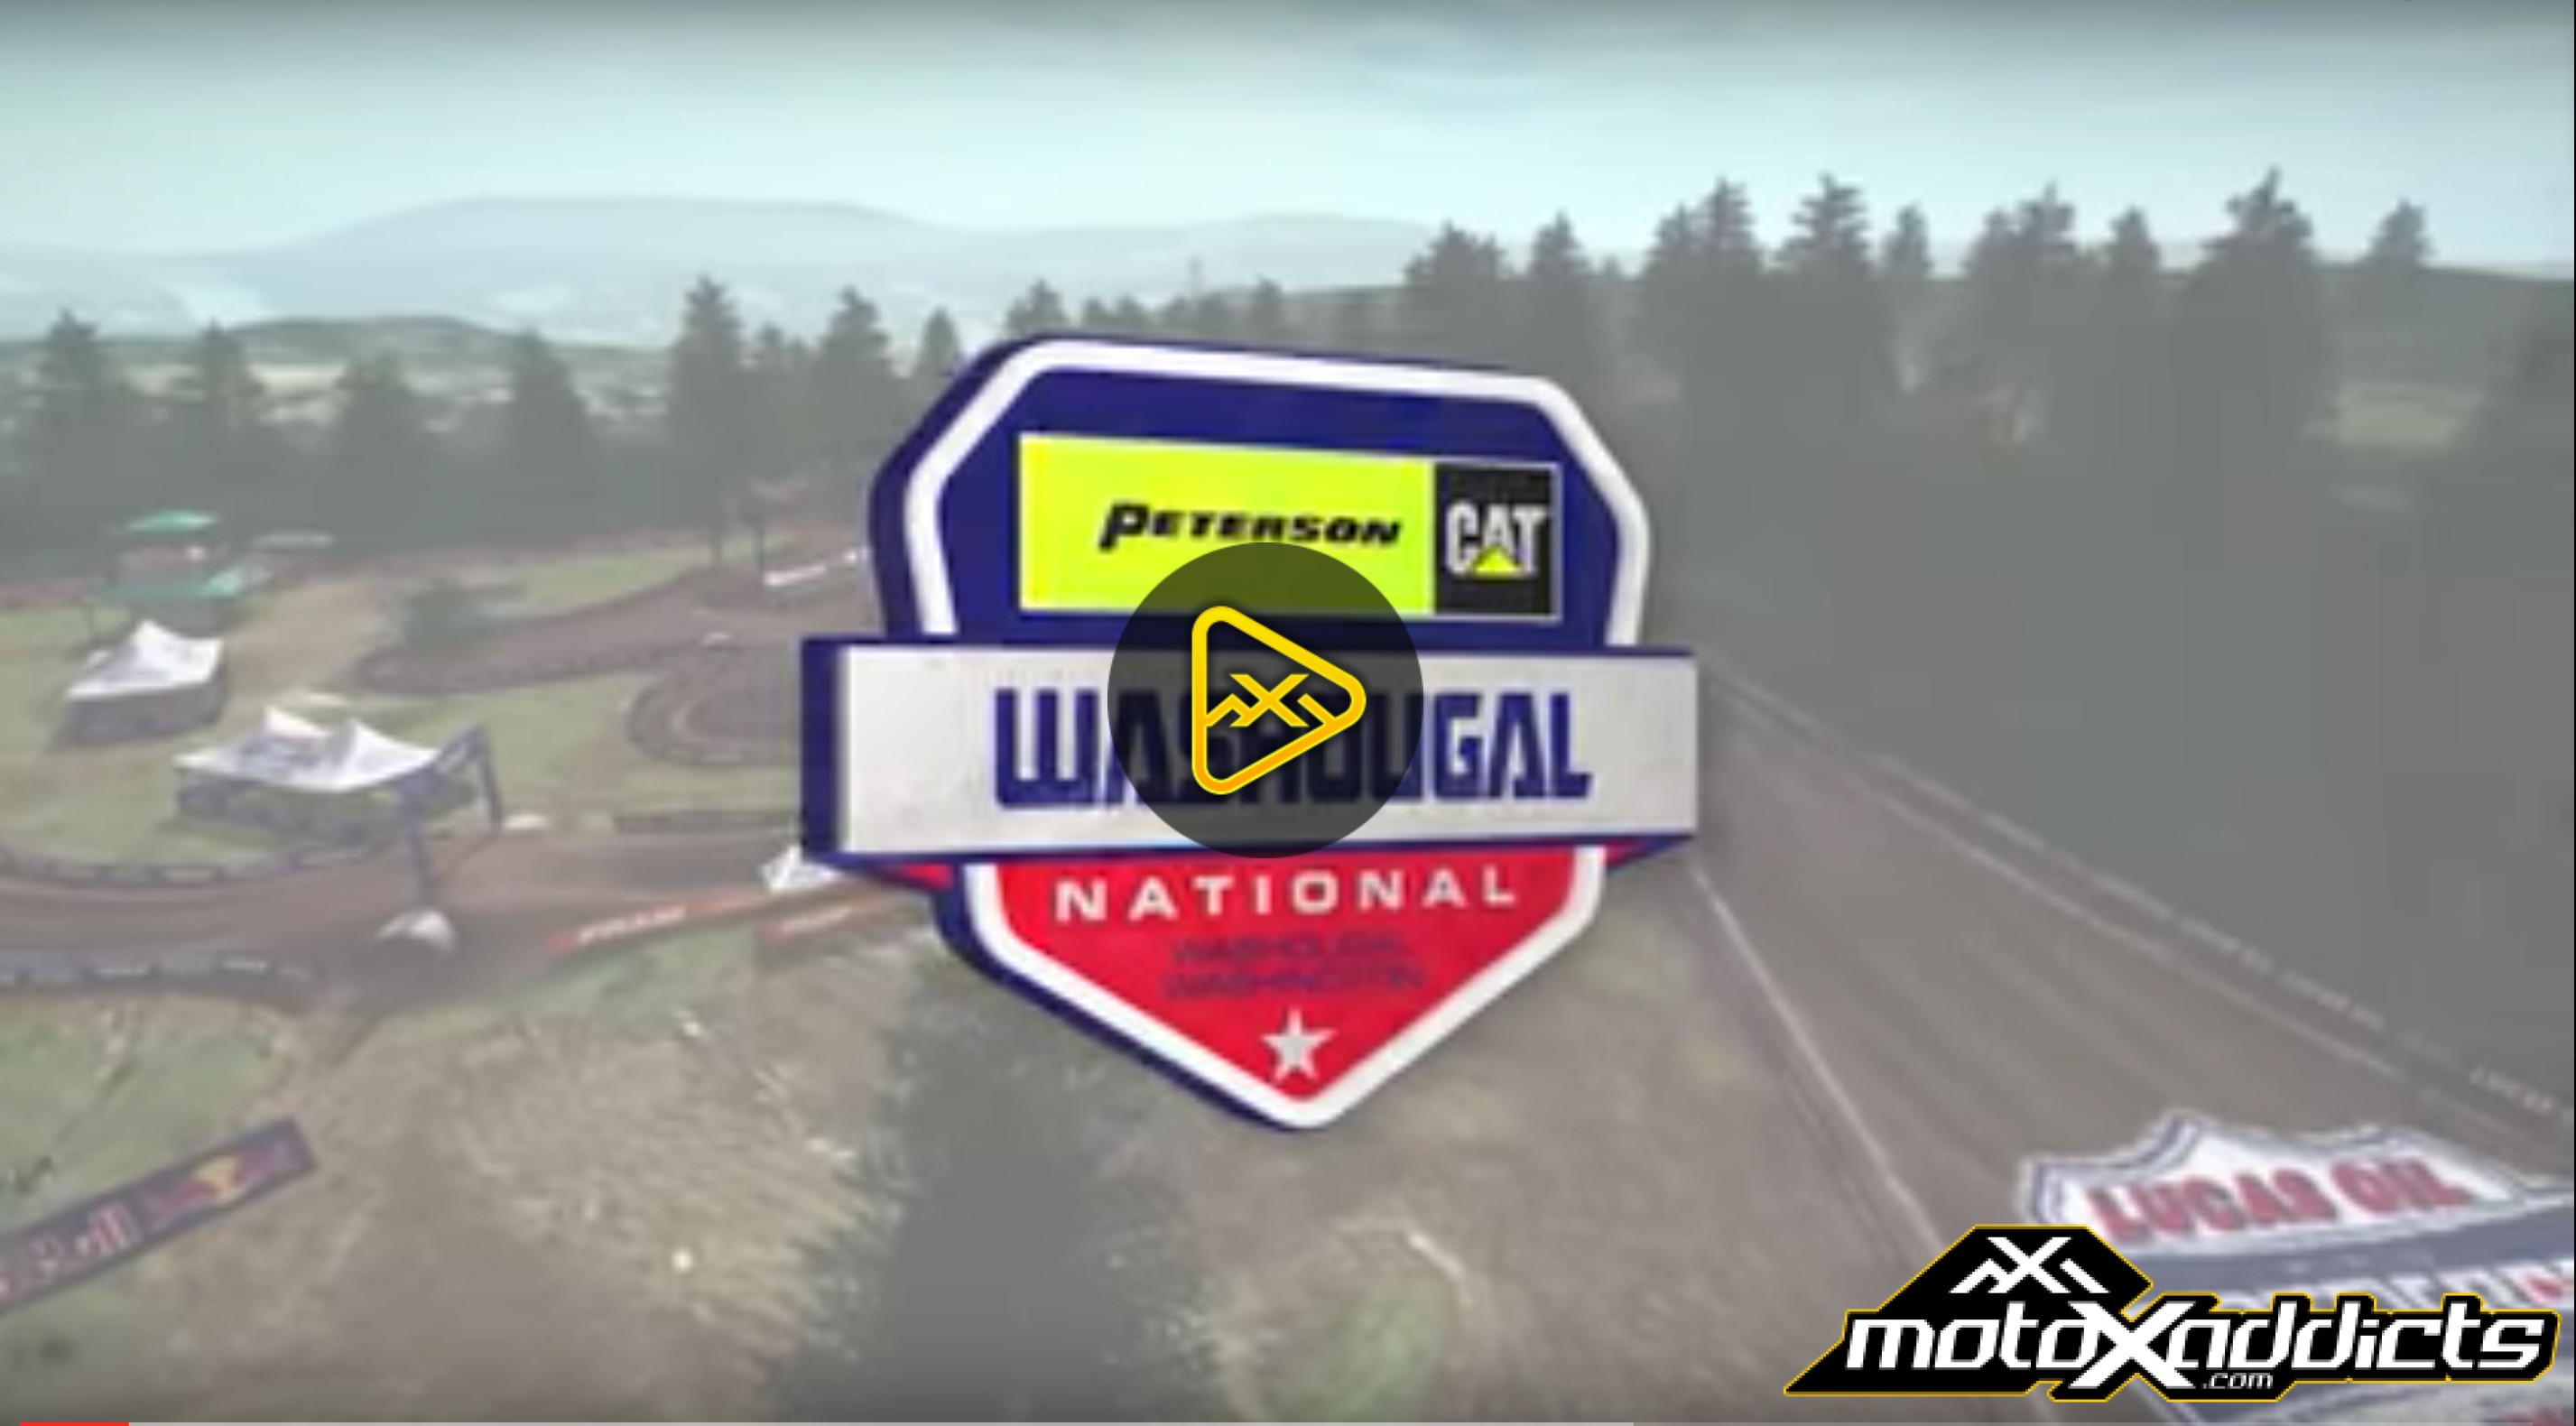 2016 Washougal National Animated Track Map